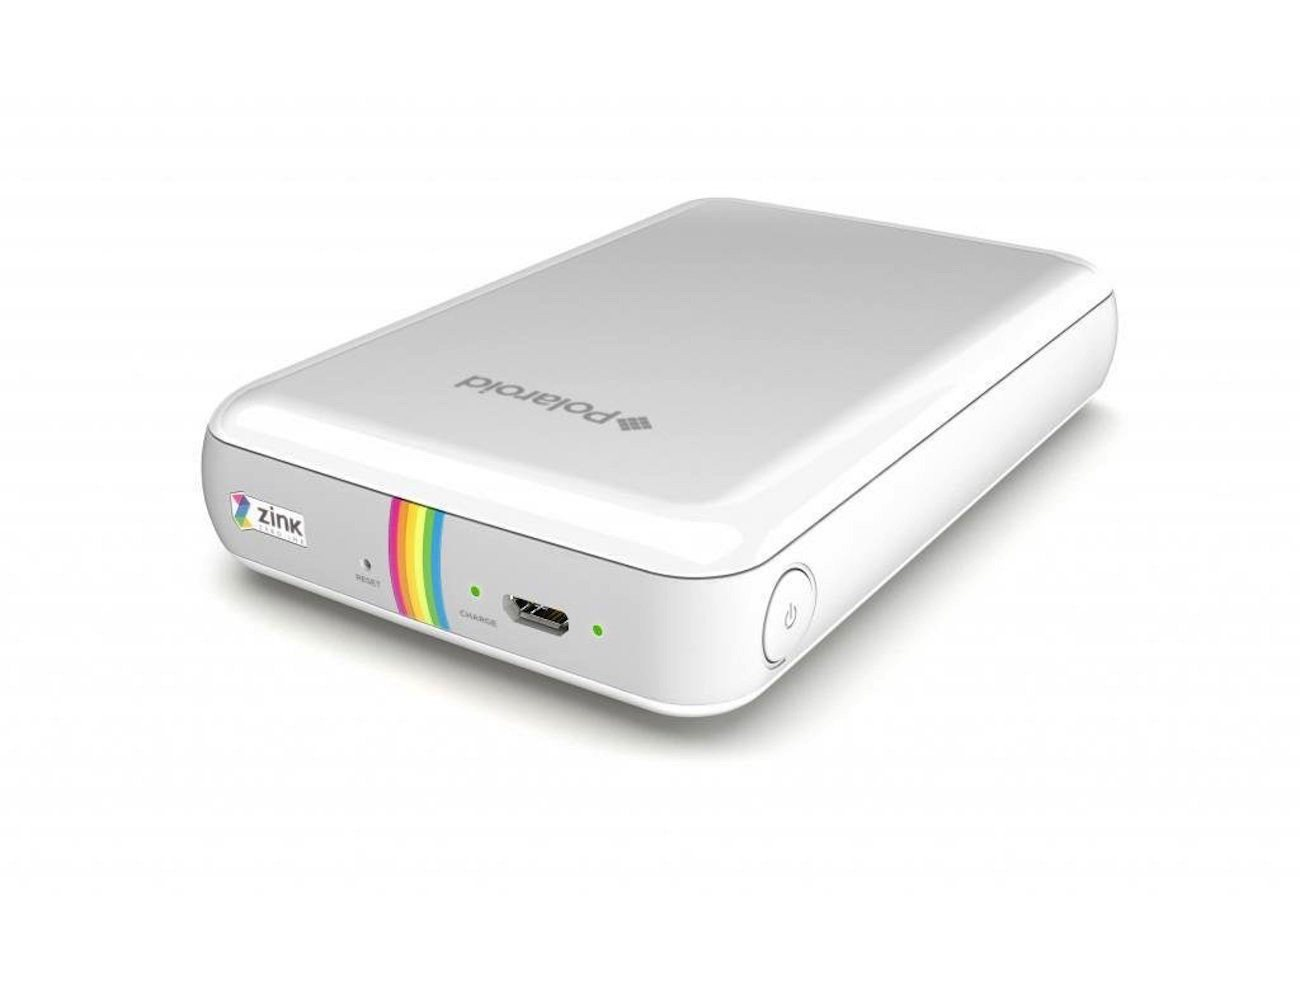 polaroid-zip-mobile-printer-05